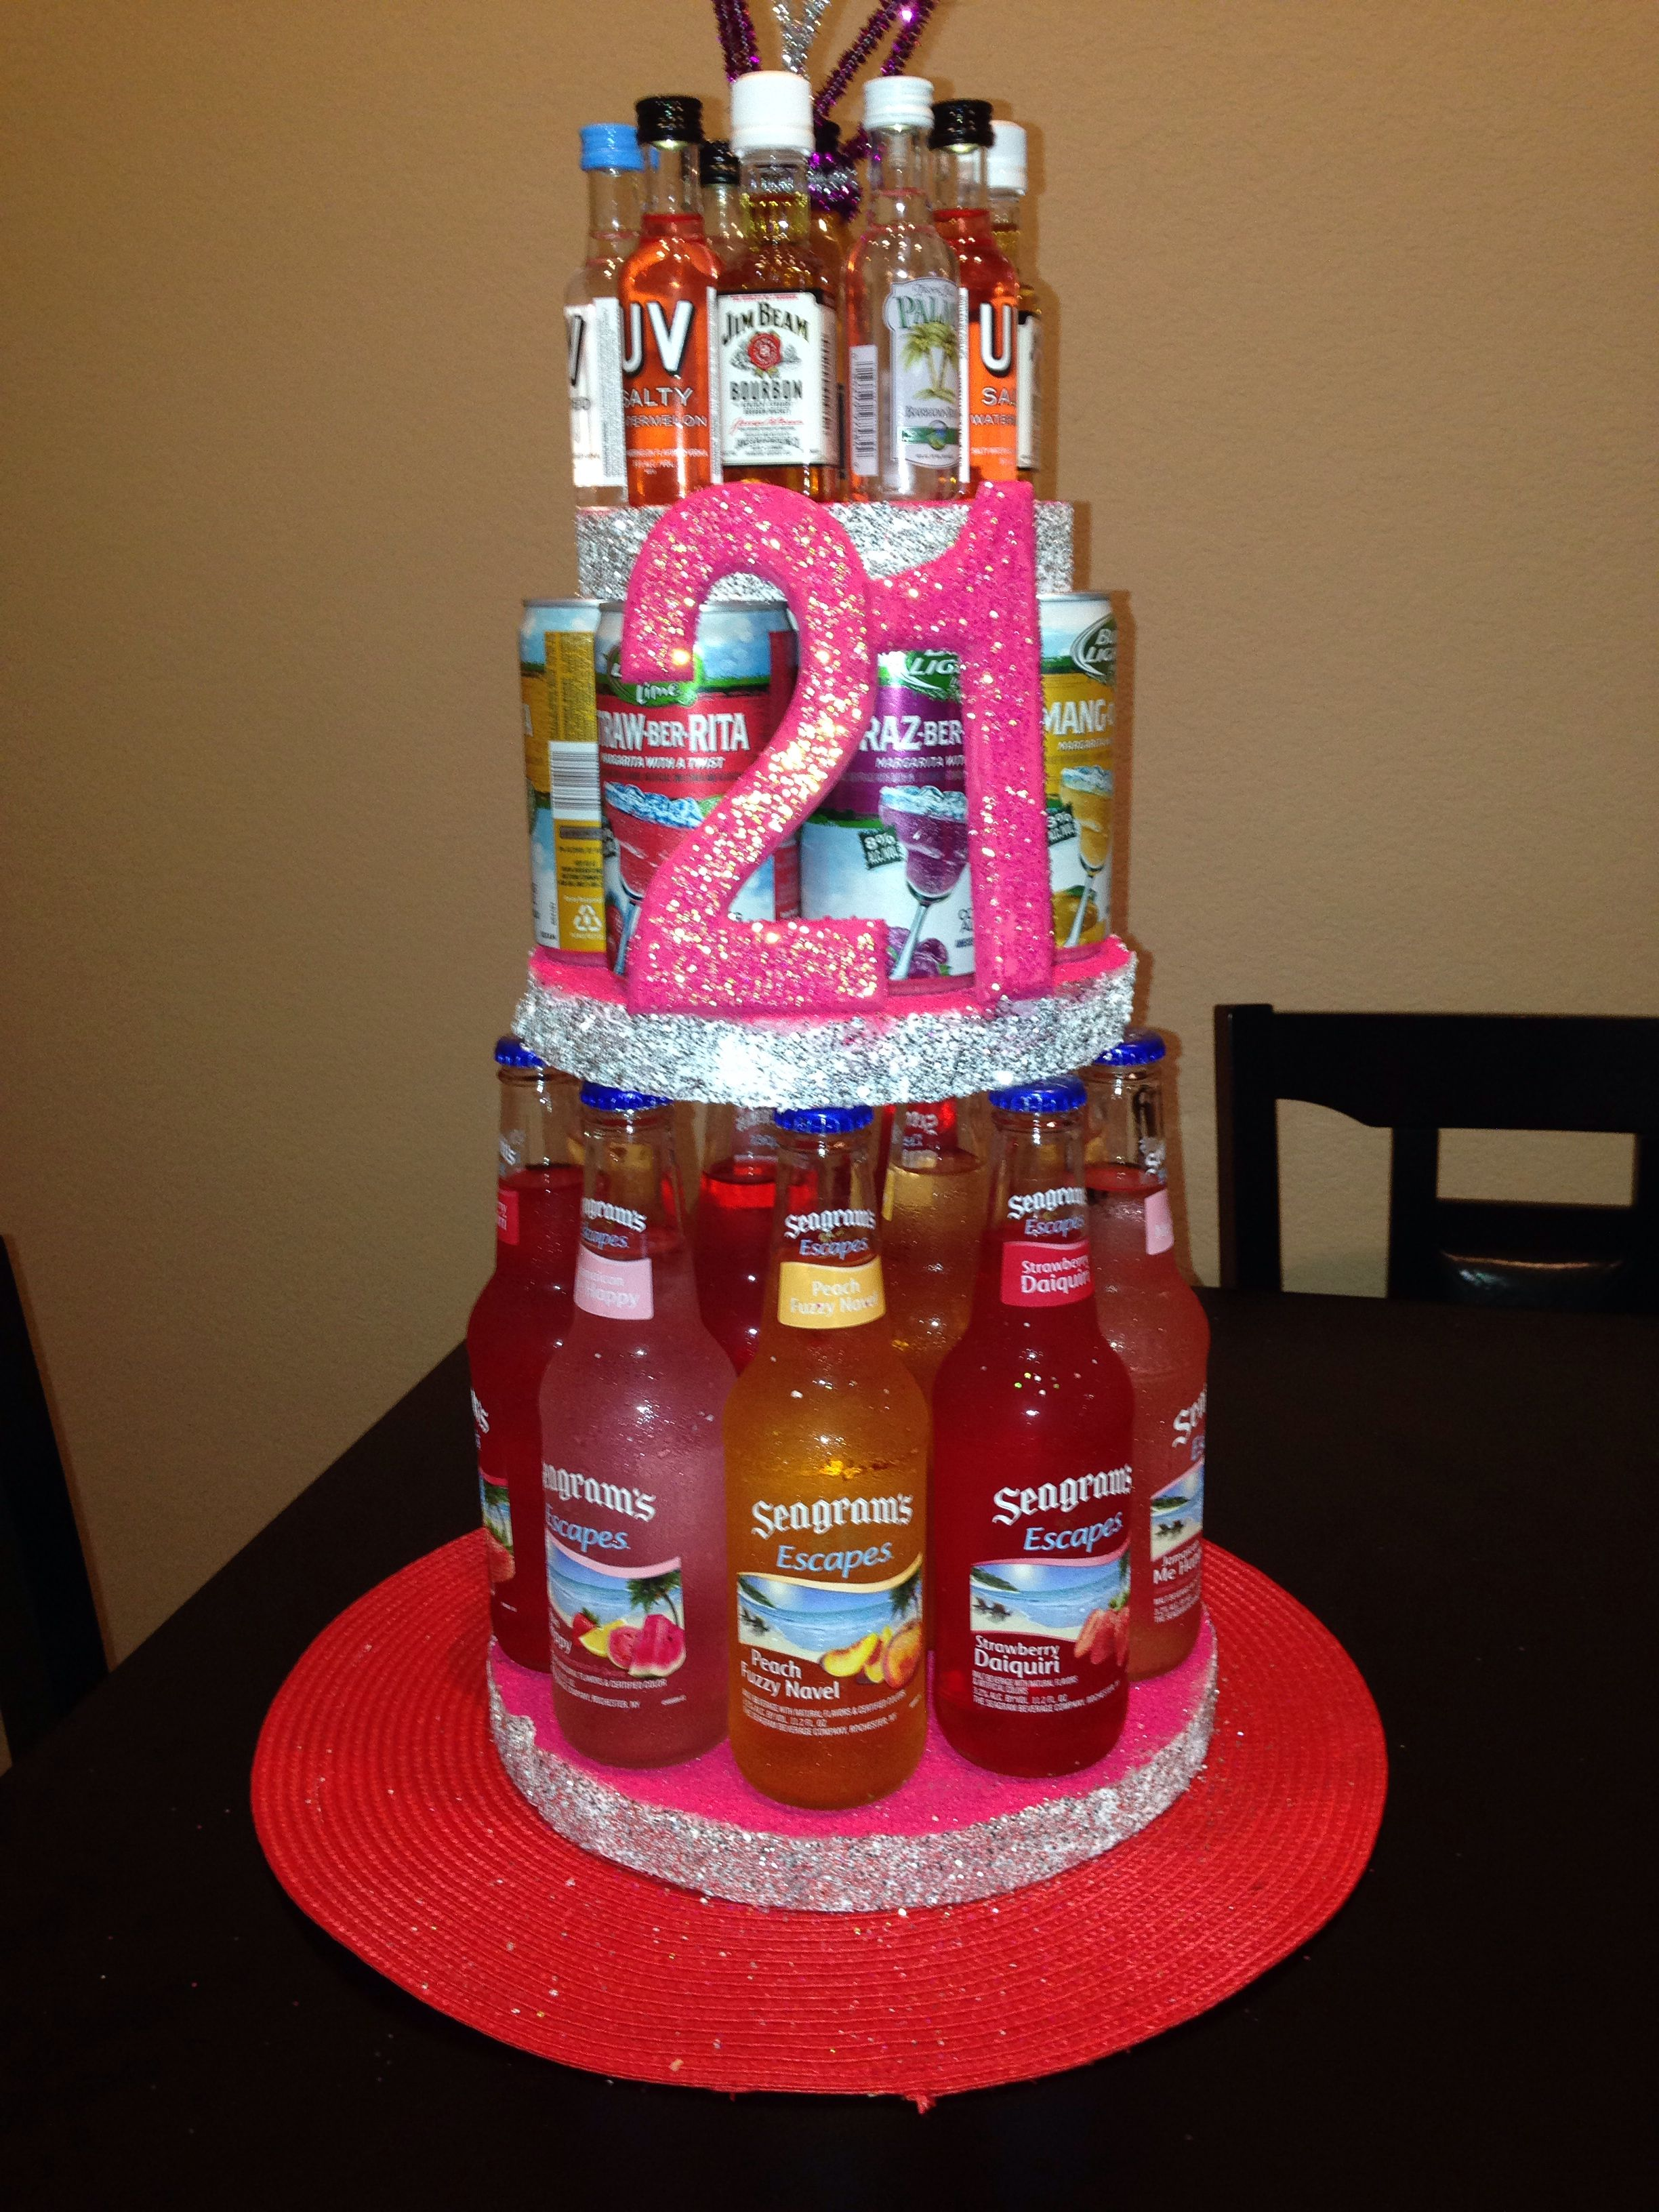 21st Alcohol Birthday Cake